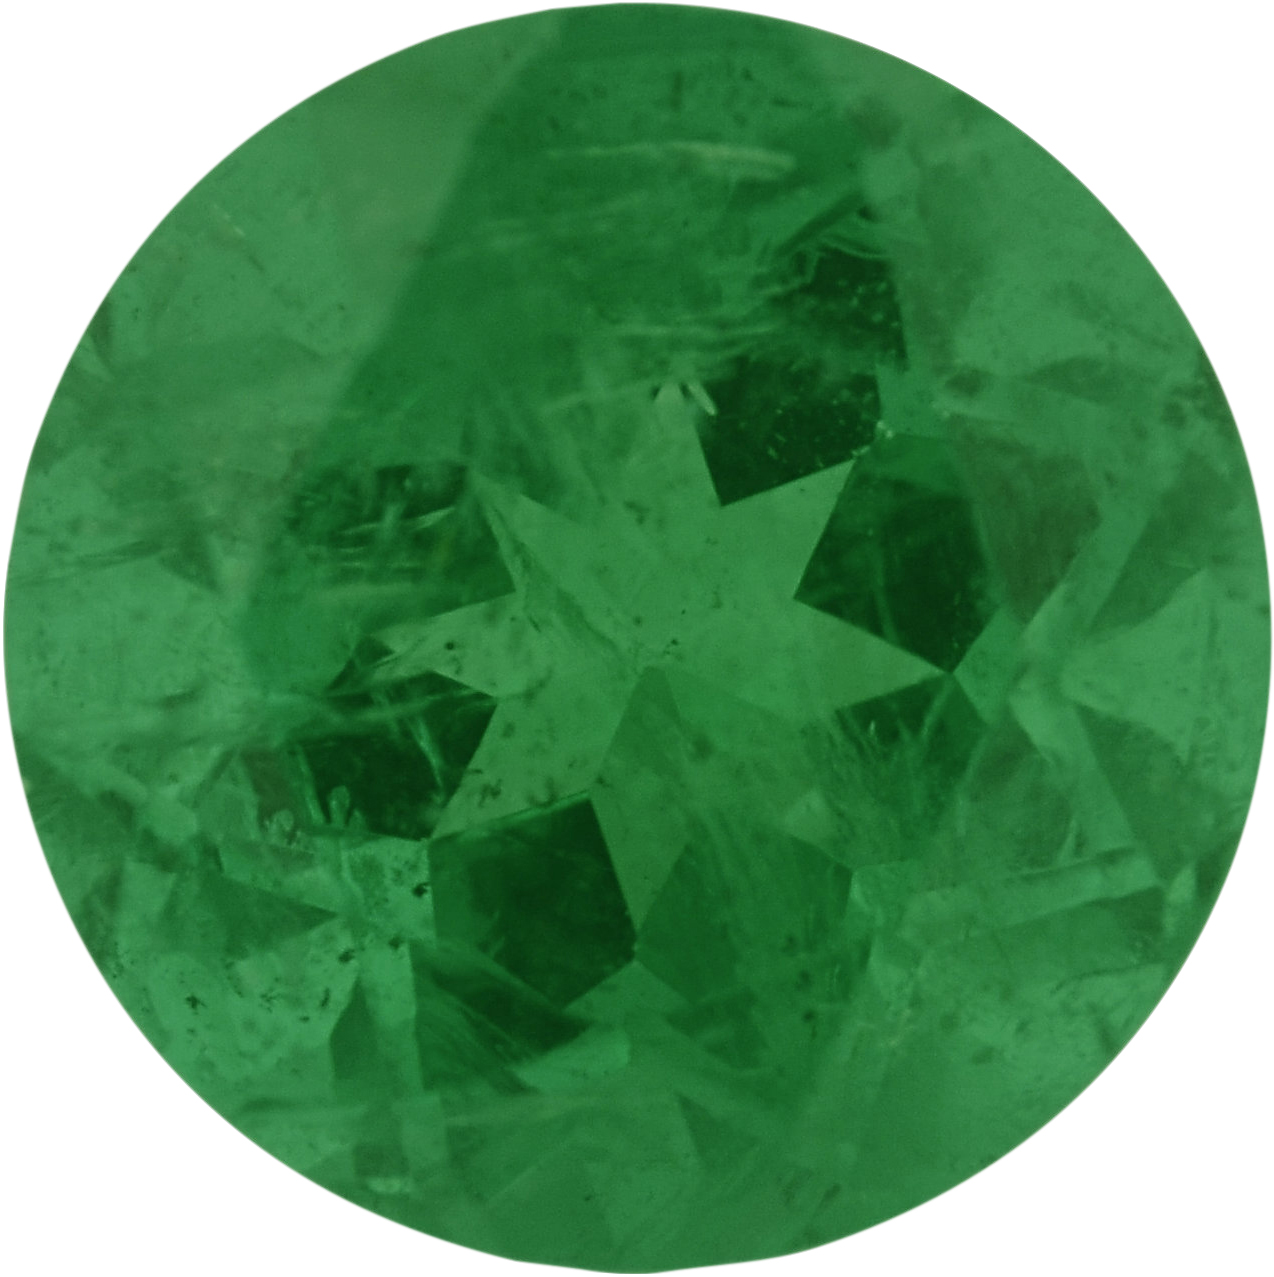 0.89 carats Emerald Loose Gemstone in Round Cut, 6.06 mm